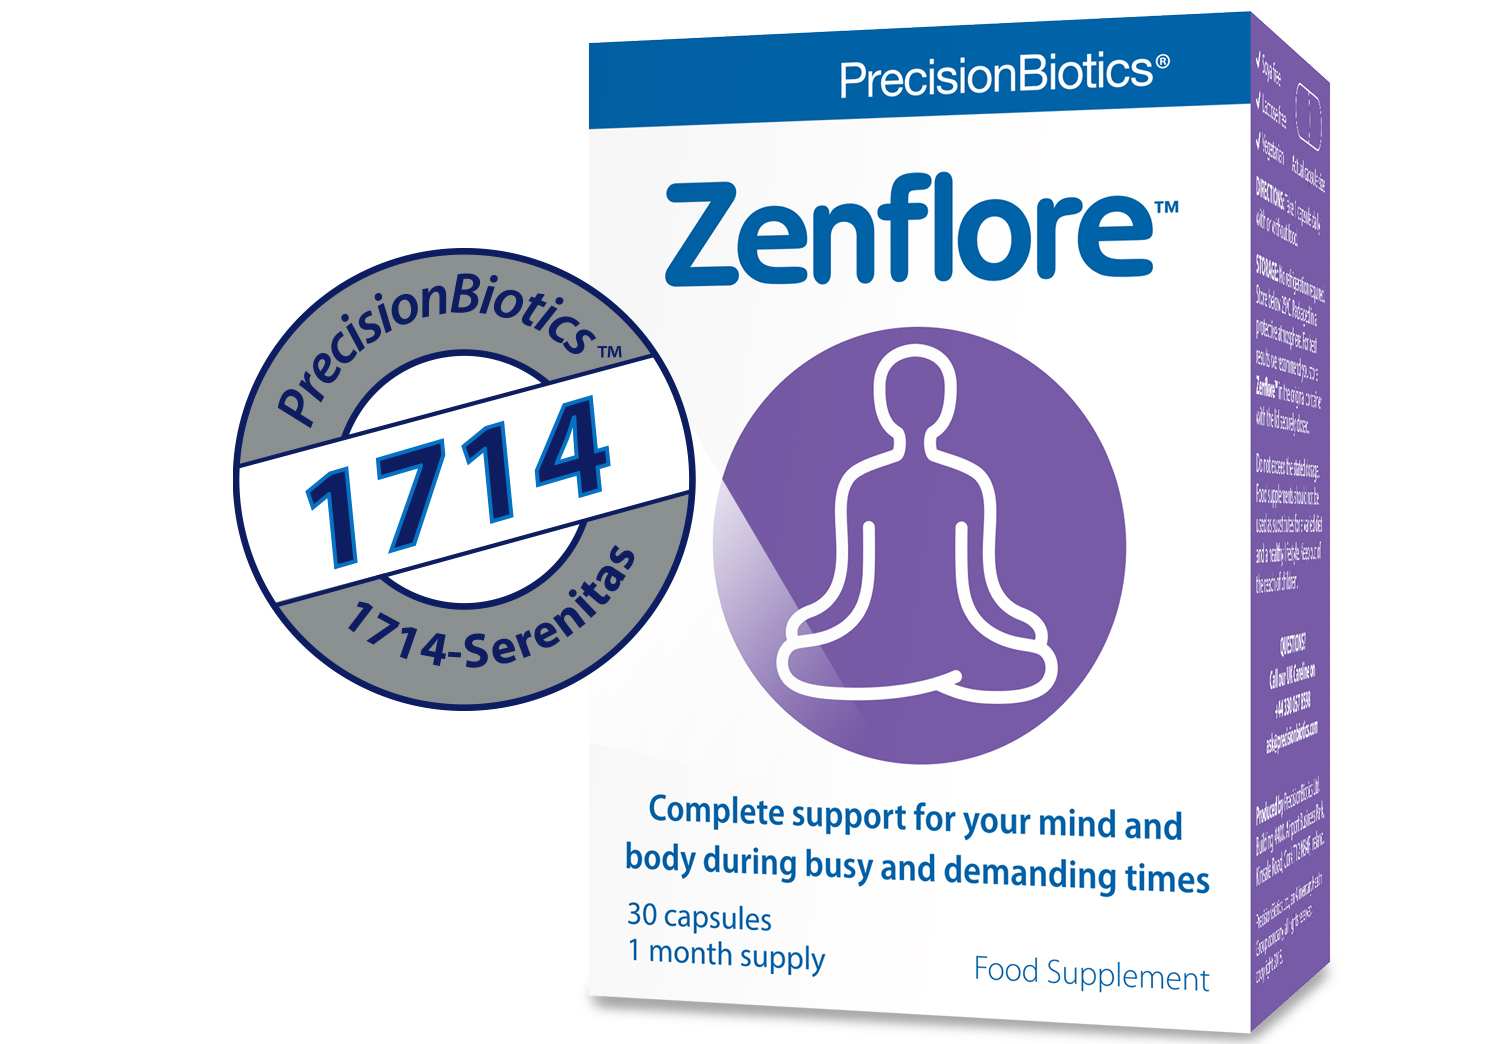 1714-Serenitas® - One of the first probiotics clinically proven to reduce levels of the stress hormone, cortisol.***. With growing interest in the potential of the gut-brain axis and 'psychobiotics', the 1714 culture has demonstrated ground breaking clinical activity (ENCK?) and safety. It is currently commercialised as a food supplement in Europe, Zenflore®.